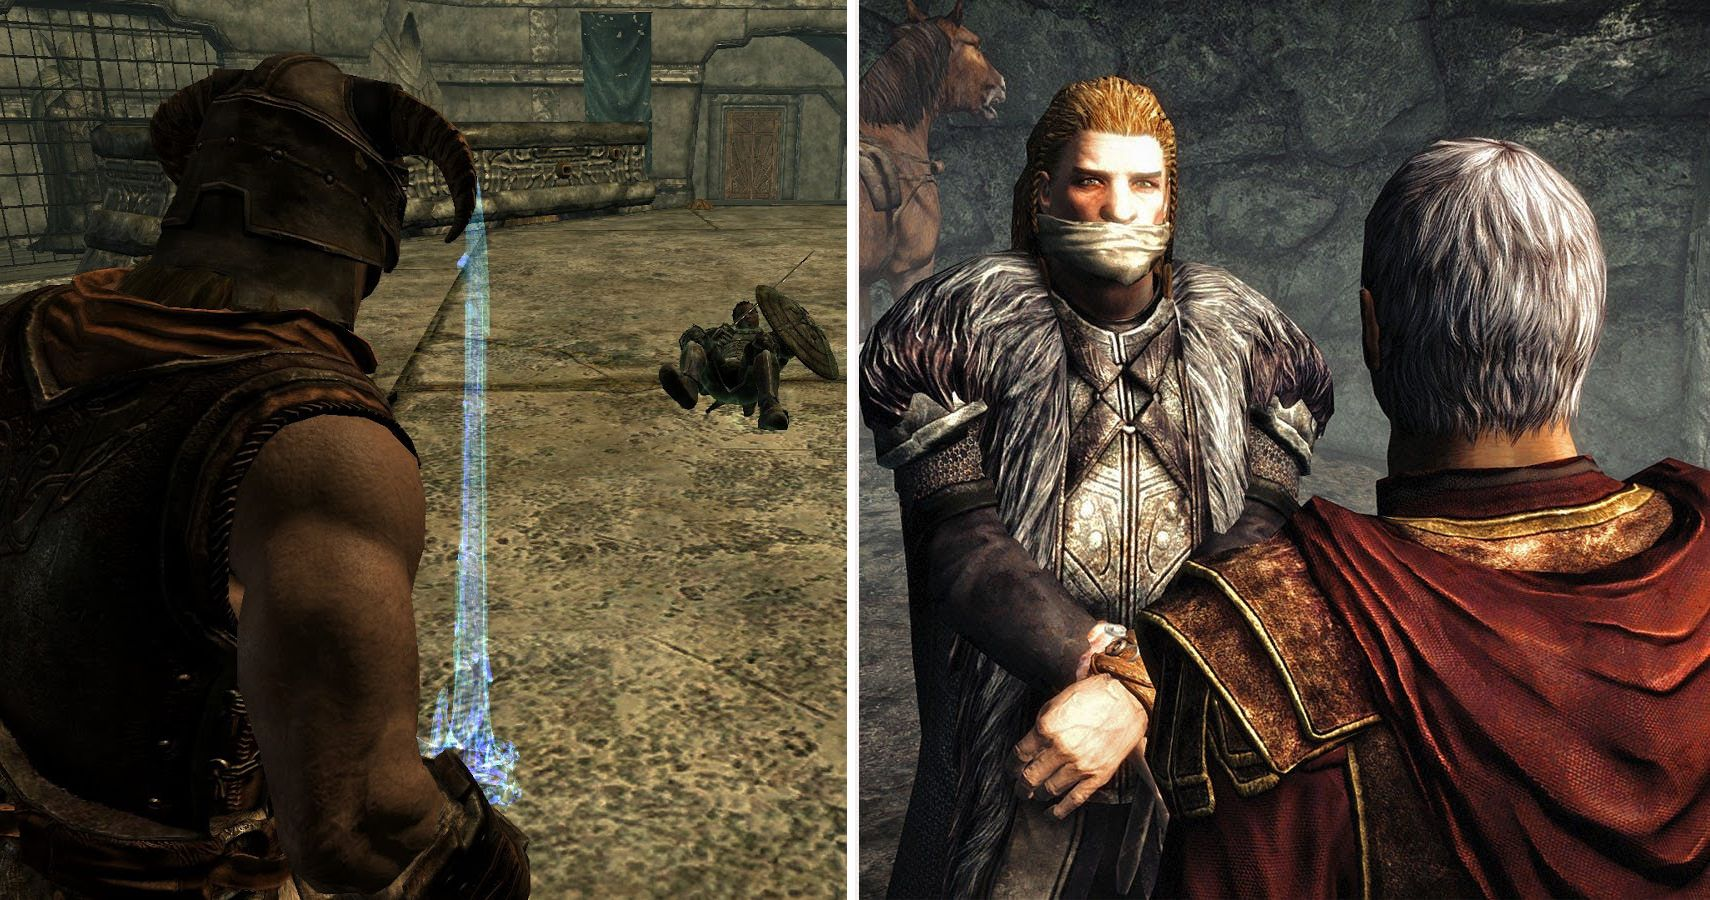 25 Epic Things They Deleted From Skyrim (But Fans Found Anyway)